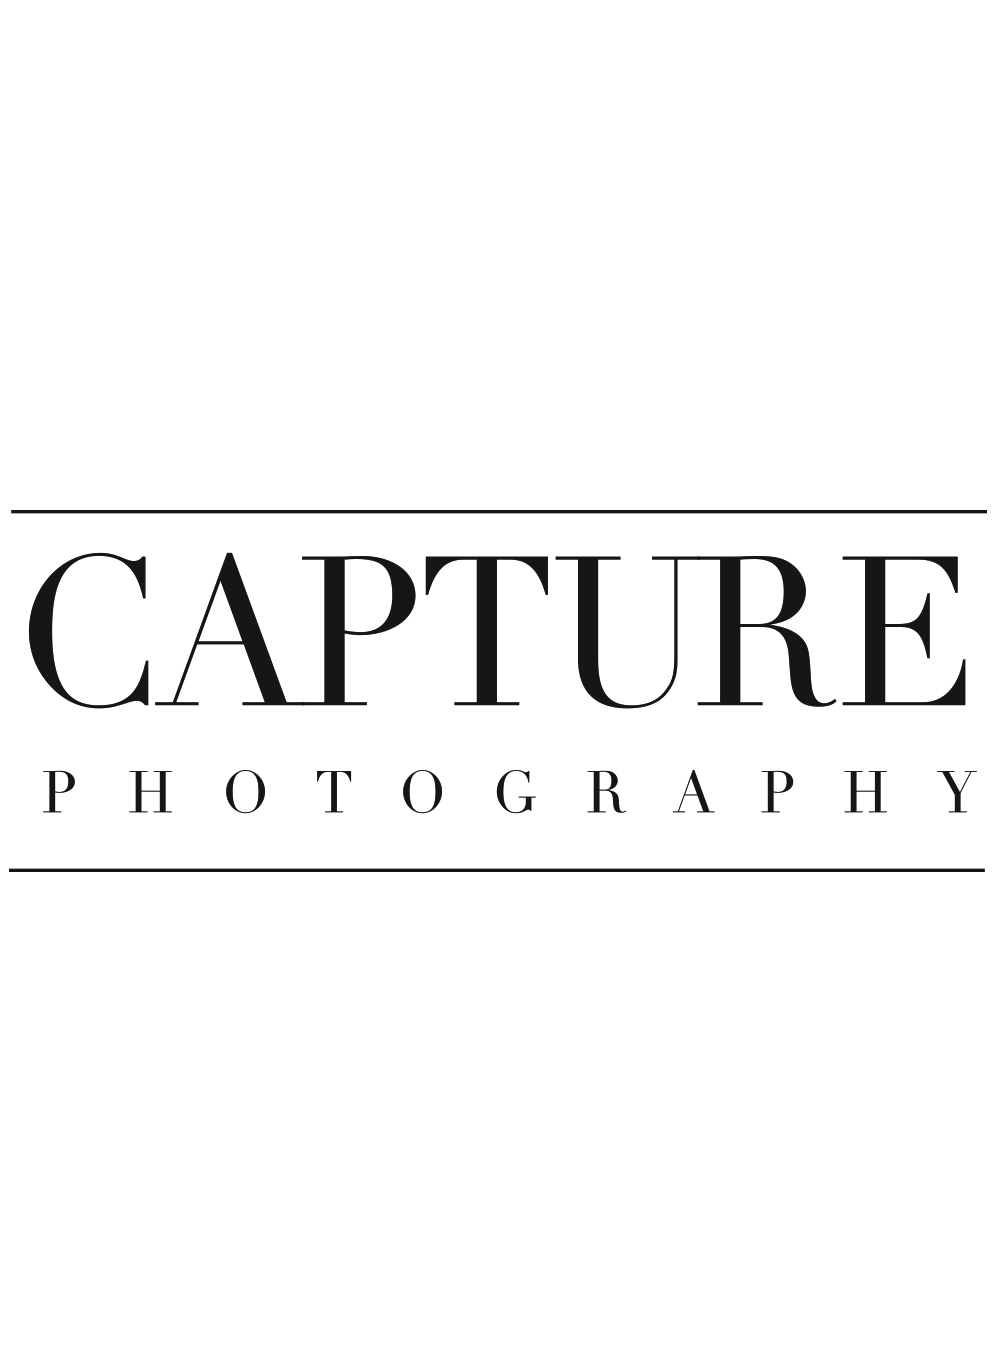 capture photography logo black text on white.jpg